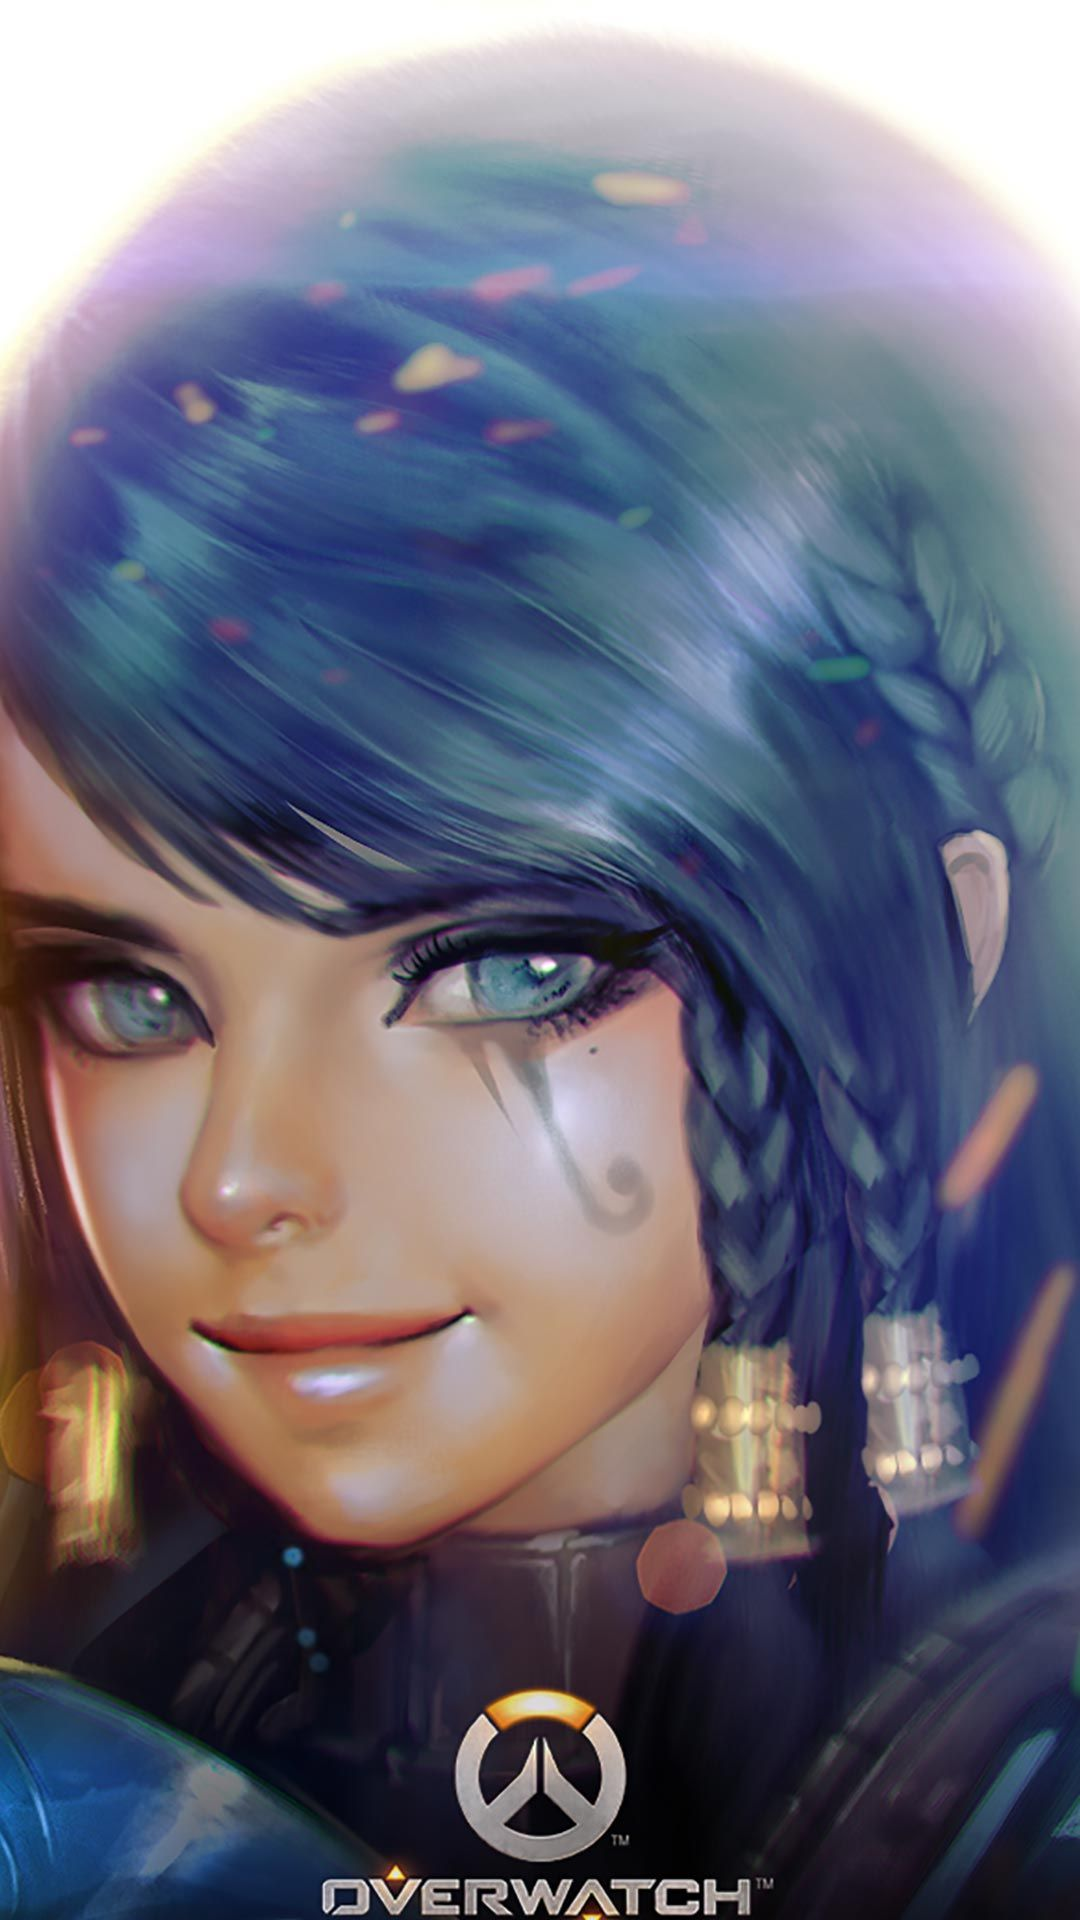 Pharah Beauty Android Iphone Wallpaper Mobile Background